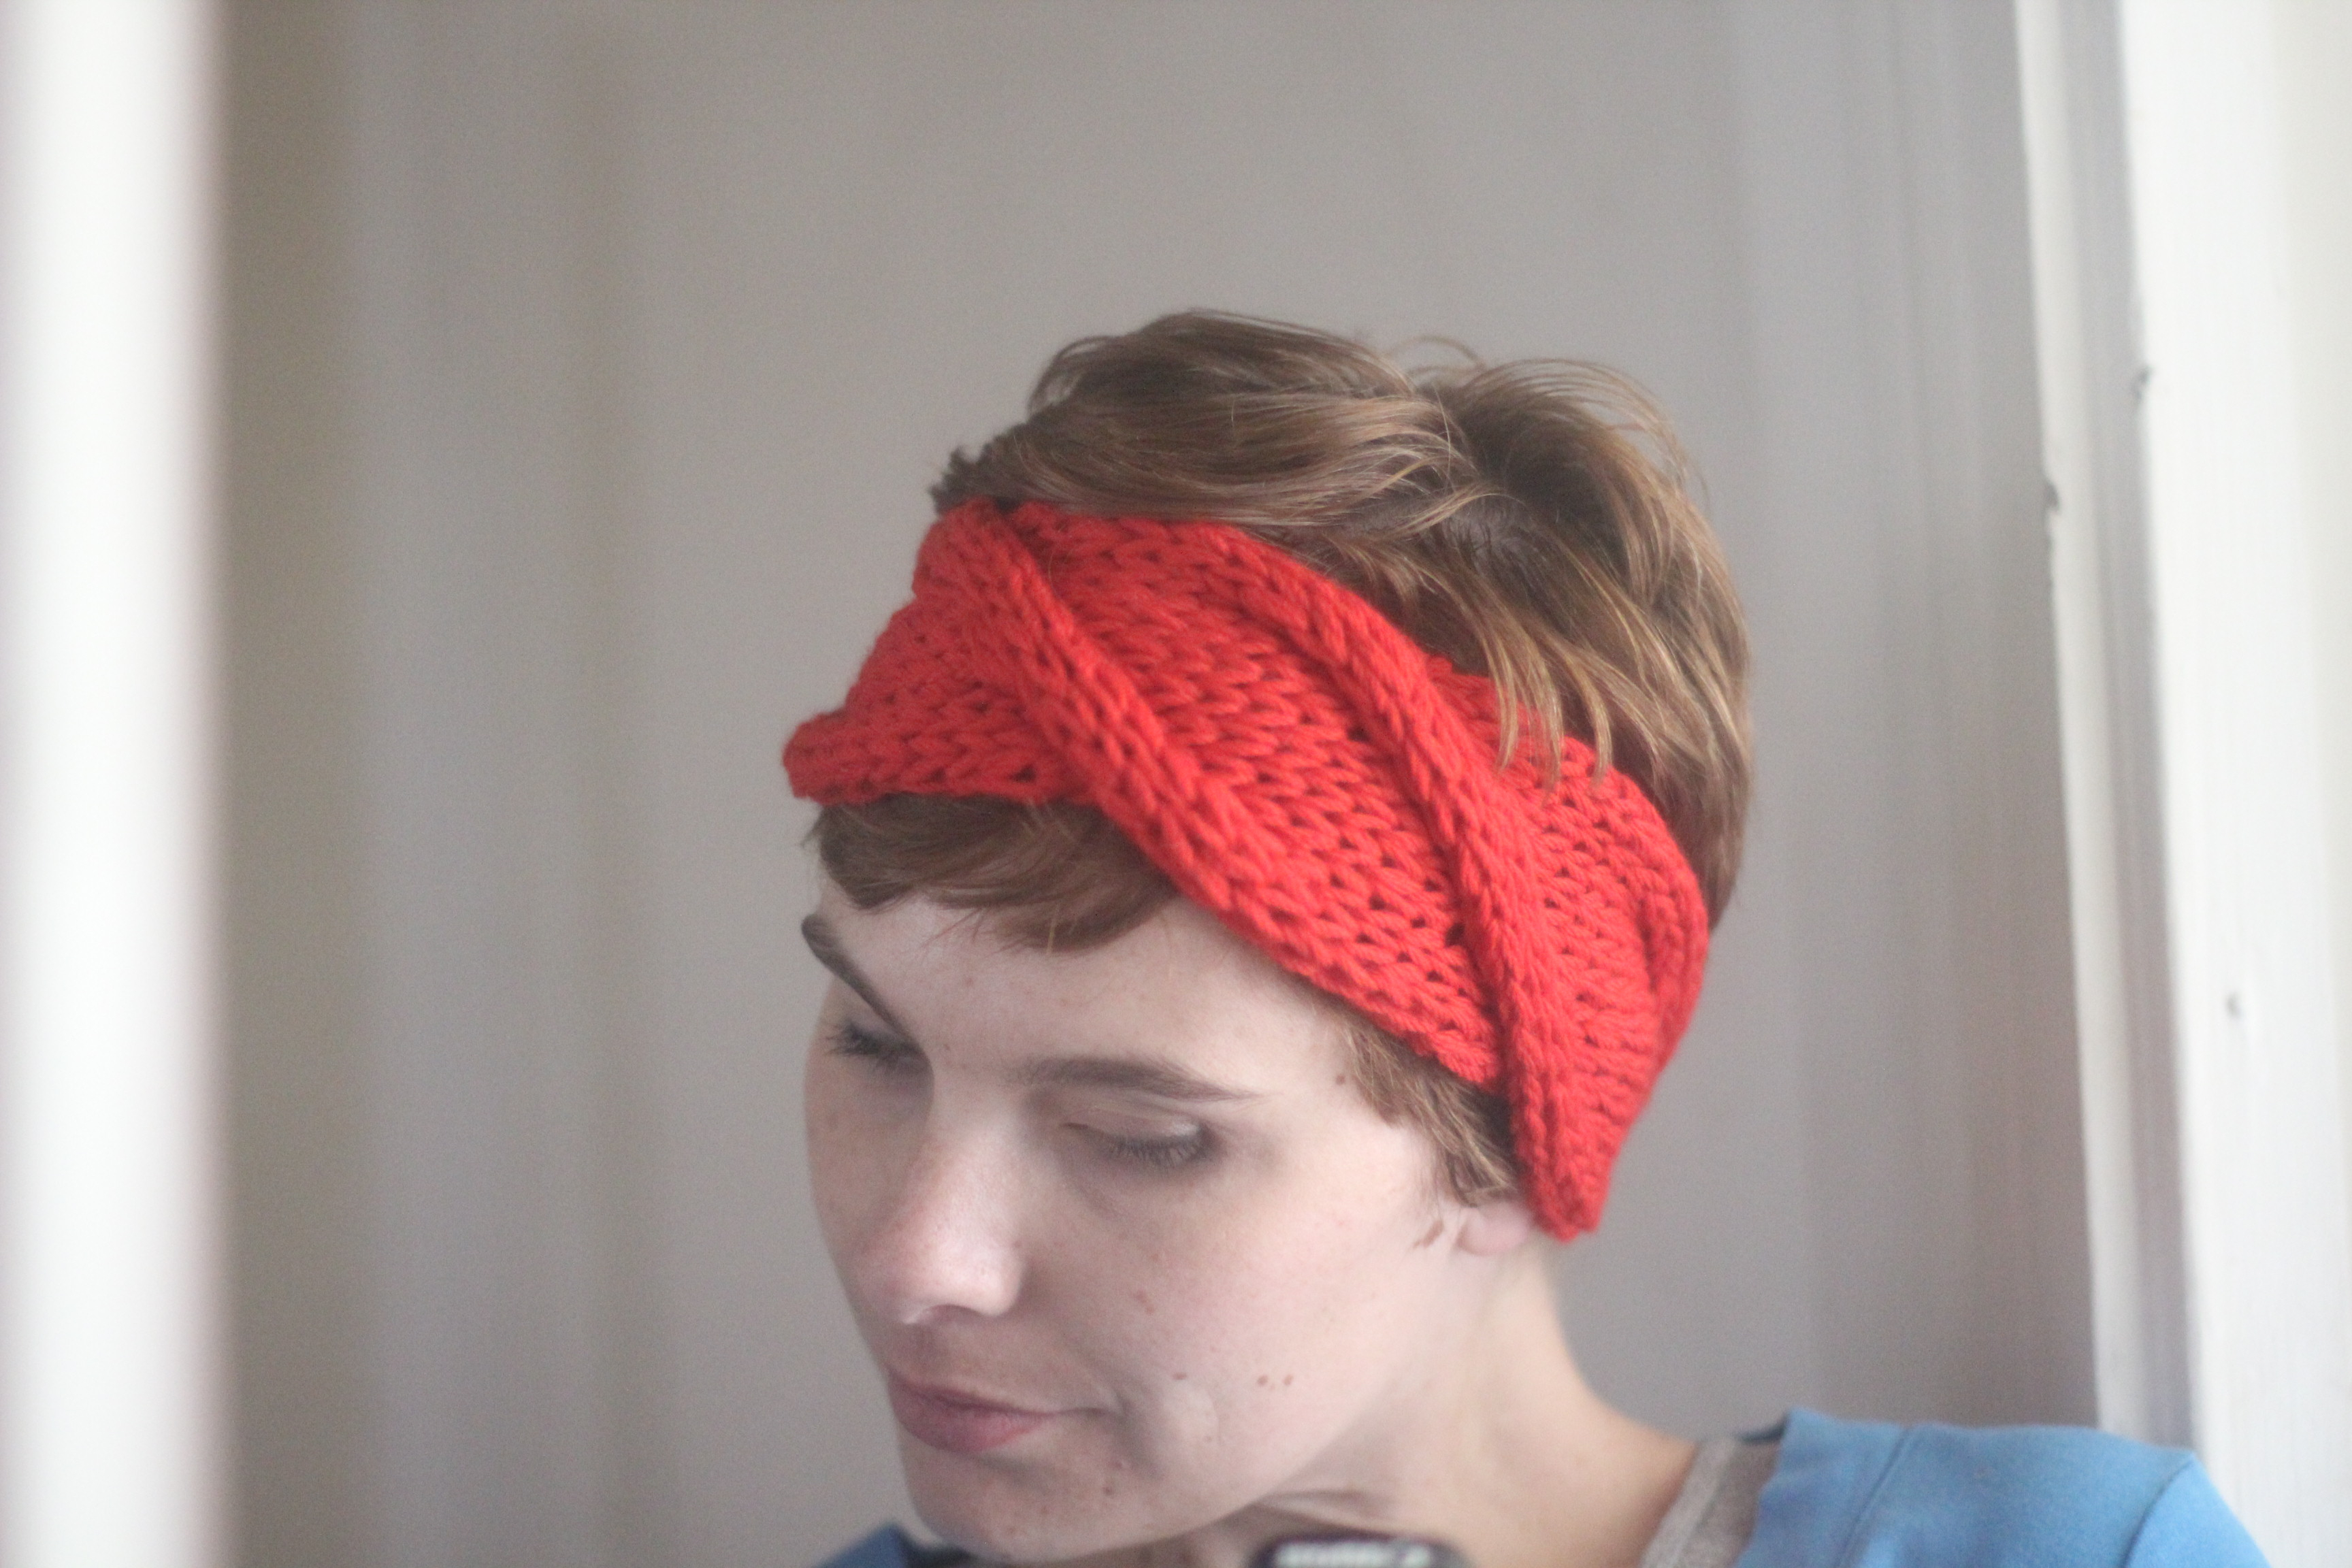 Easy Cable Knit Headband Pattern Cable Headband Knitting Pattern Easy The Sweatshop Of Love Blog